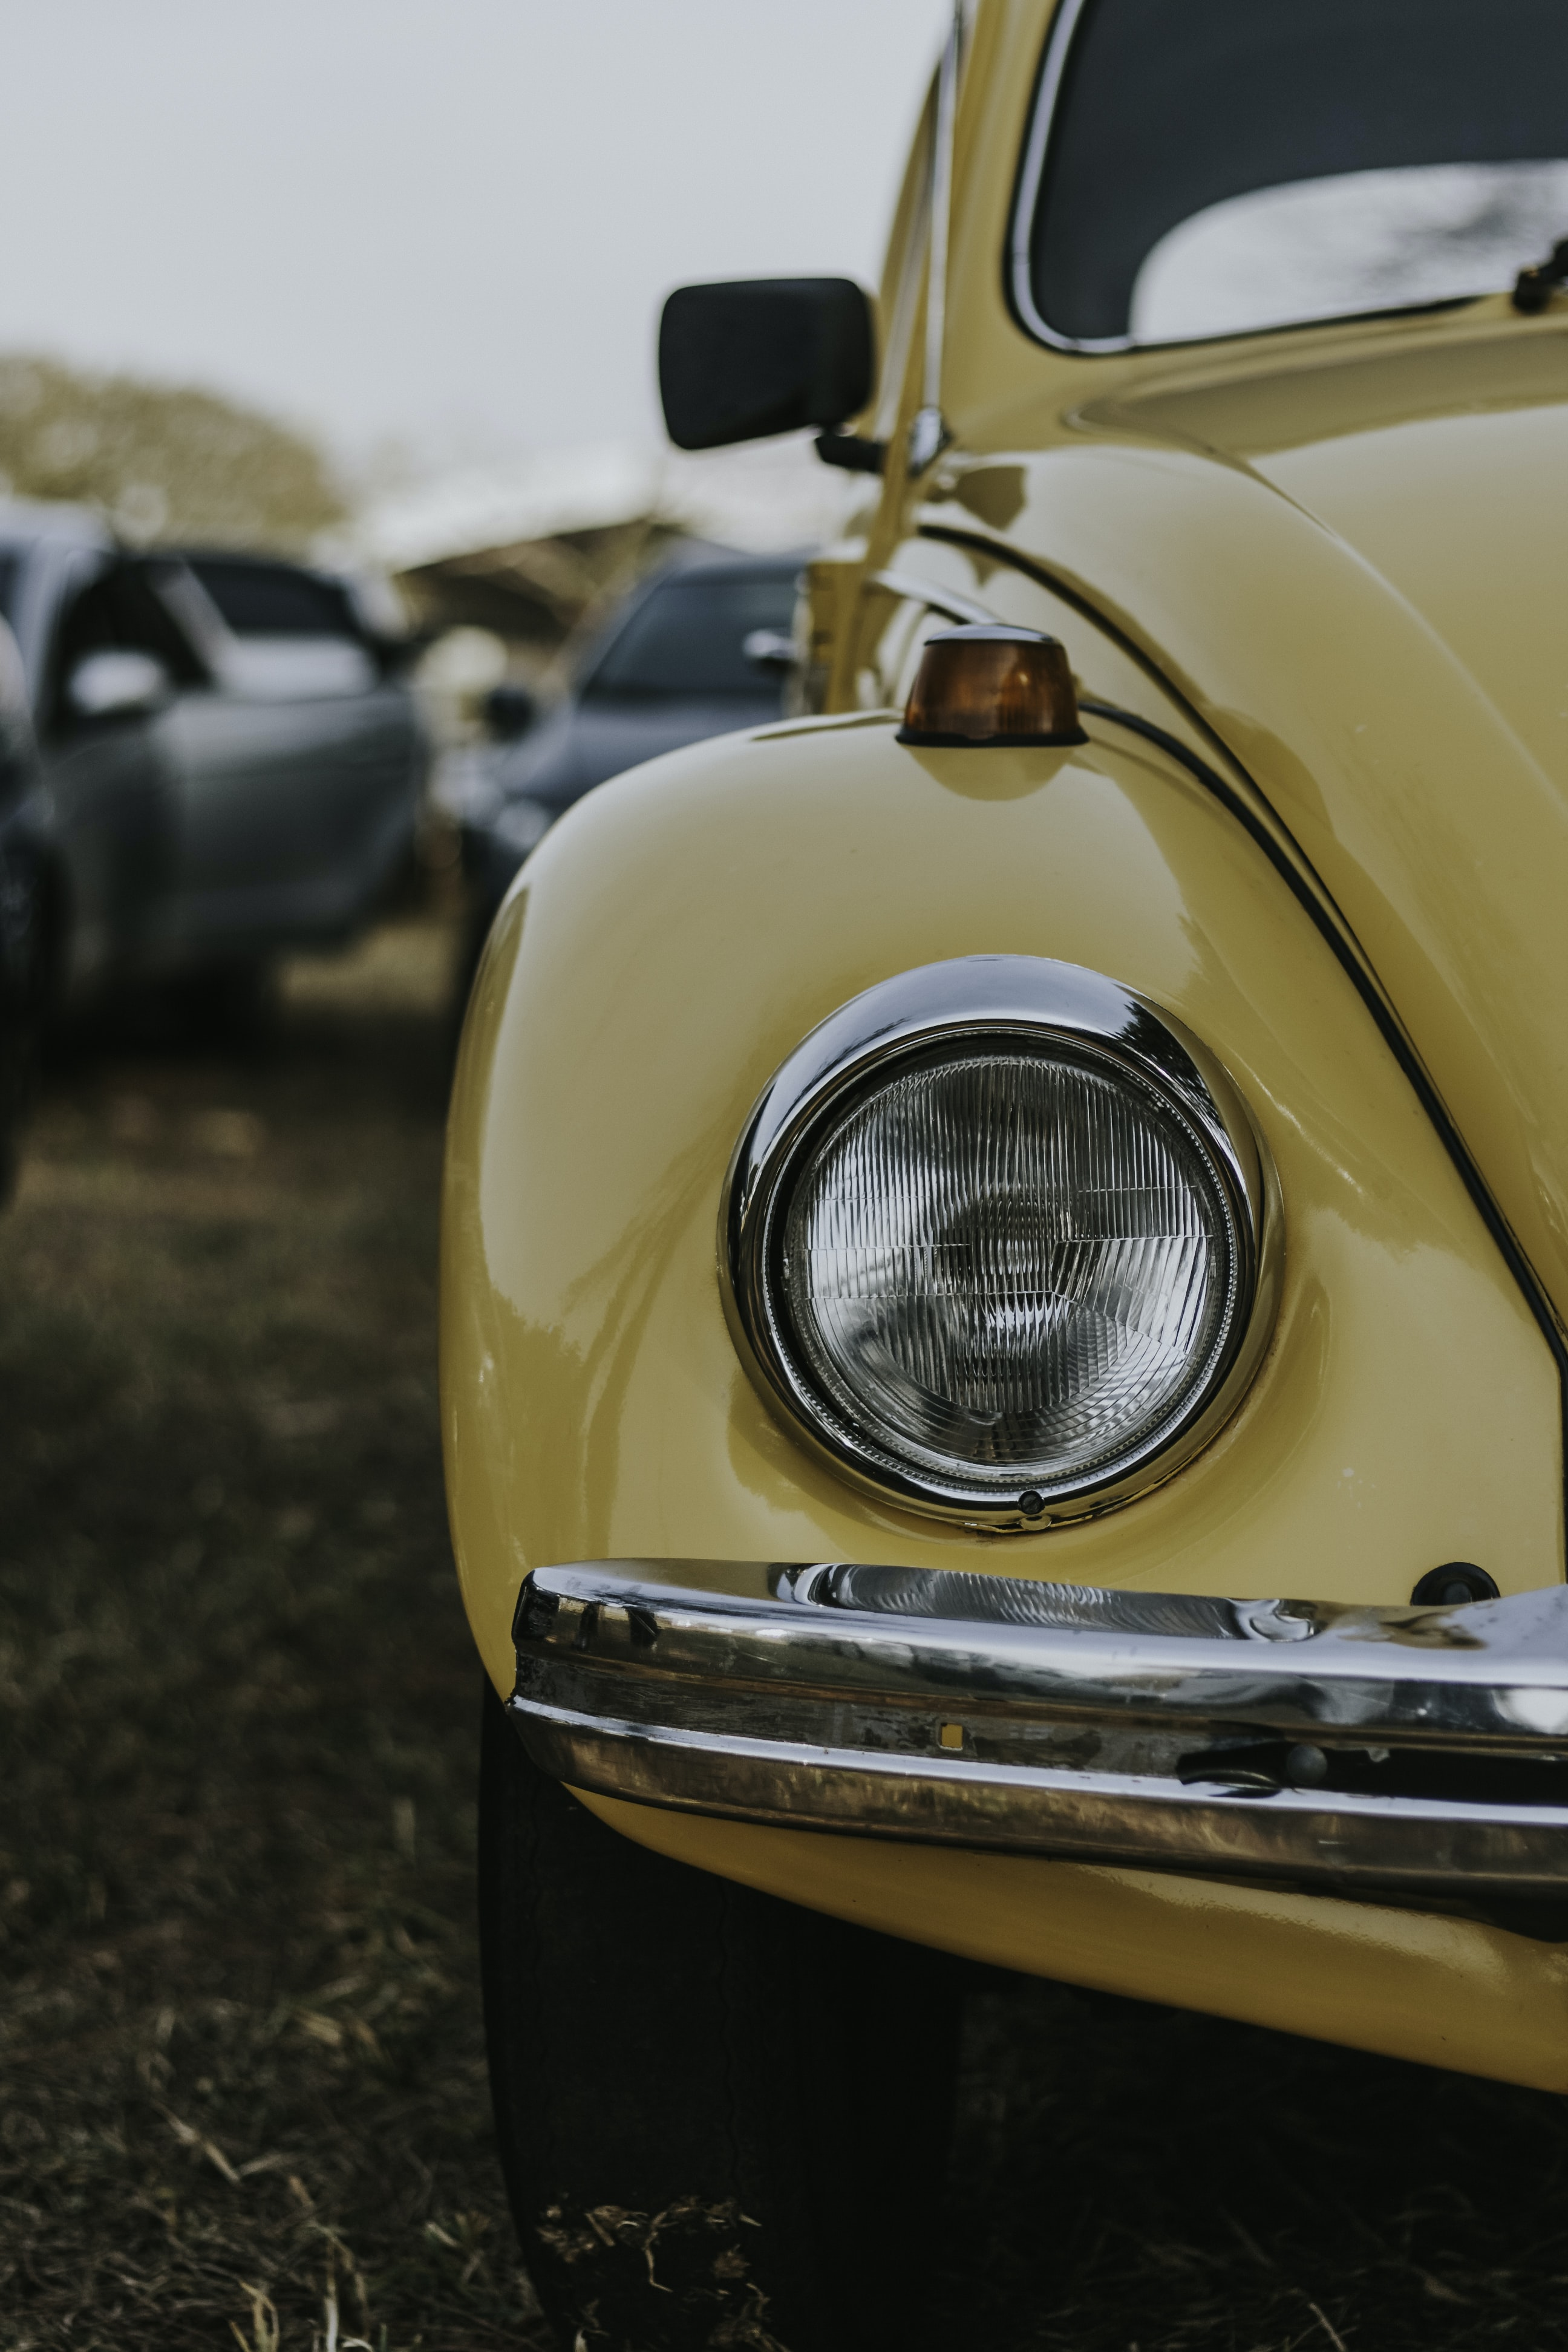 The passenger side headlight of a yellow car.